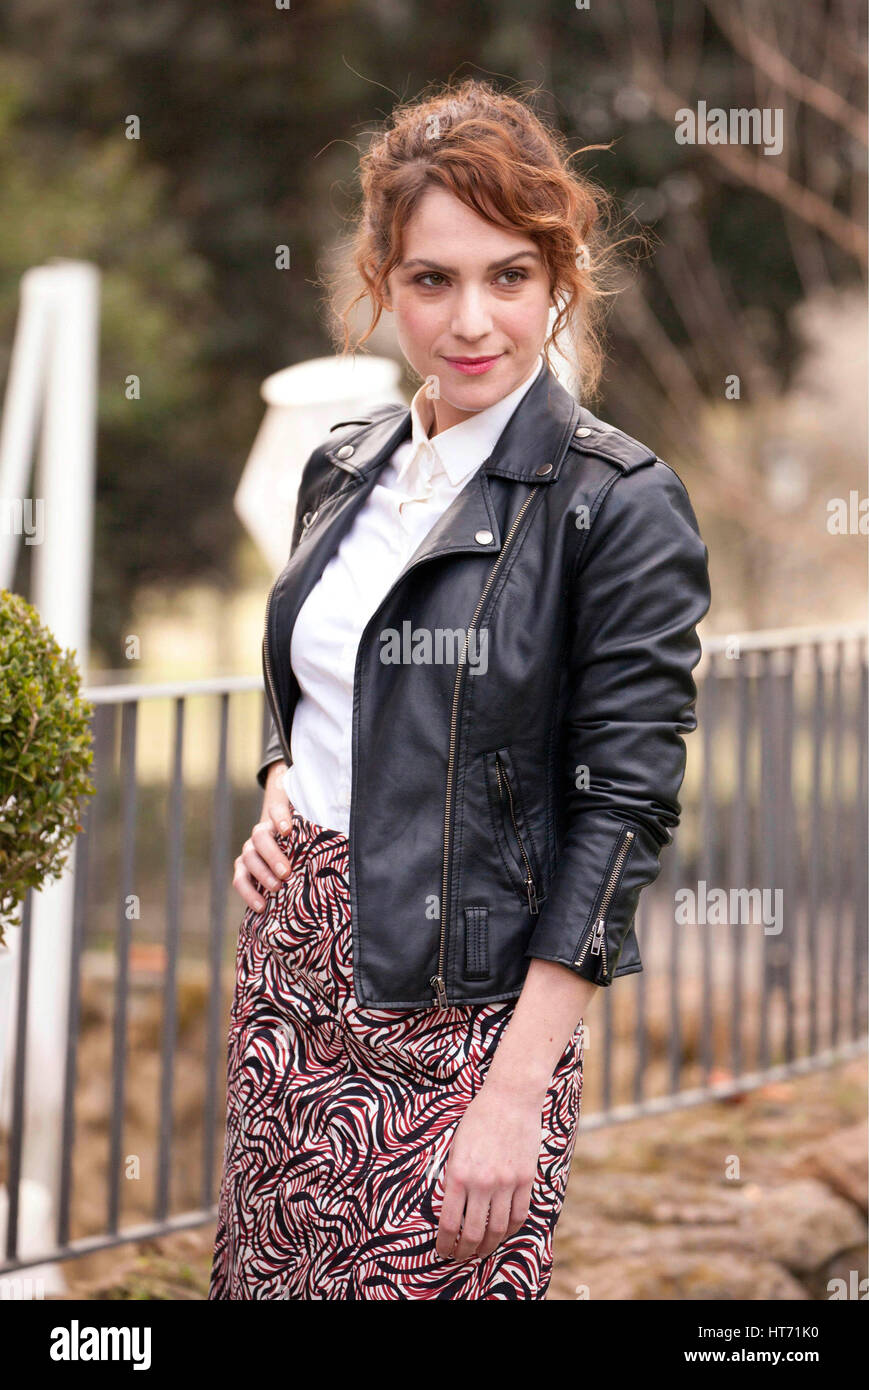 The actress Isabella Ragonese during the photocall of movie ' Il padre d'Italia ', Rome, Italy, Feb - Stock Image